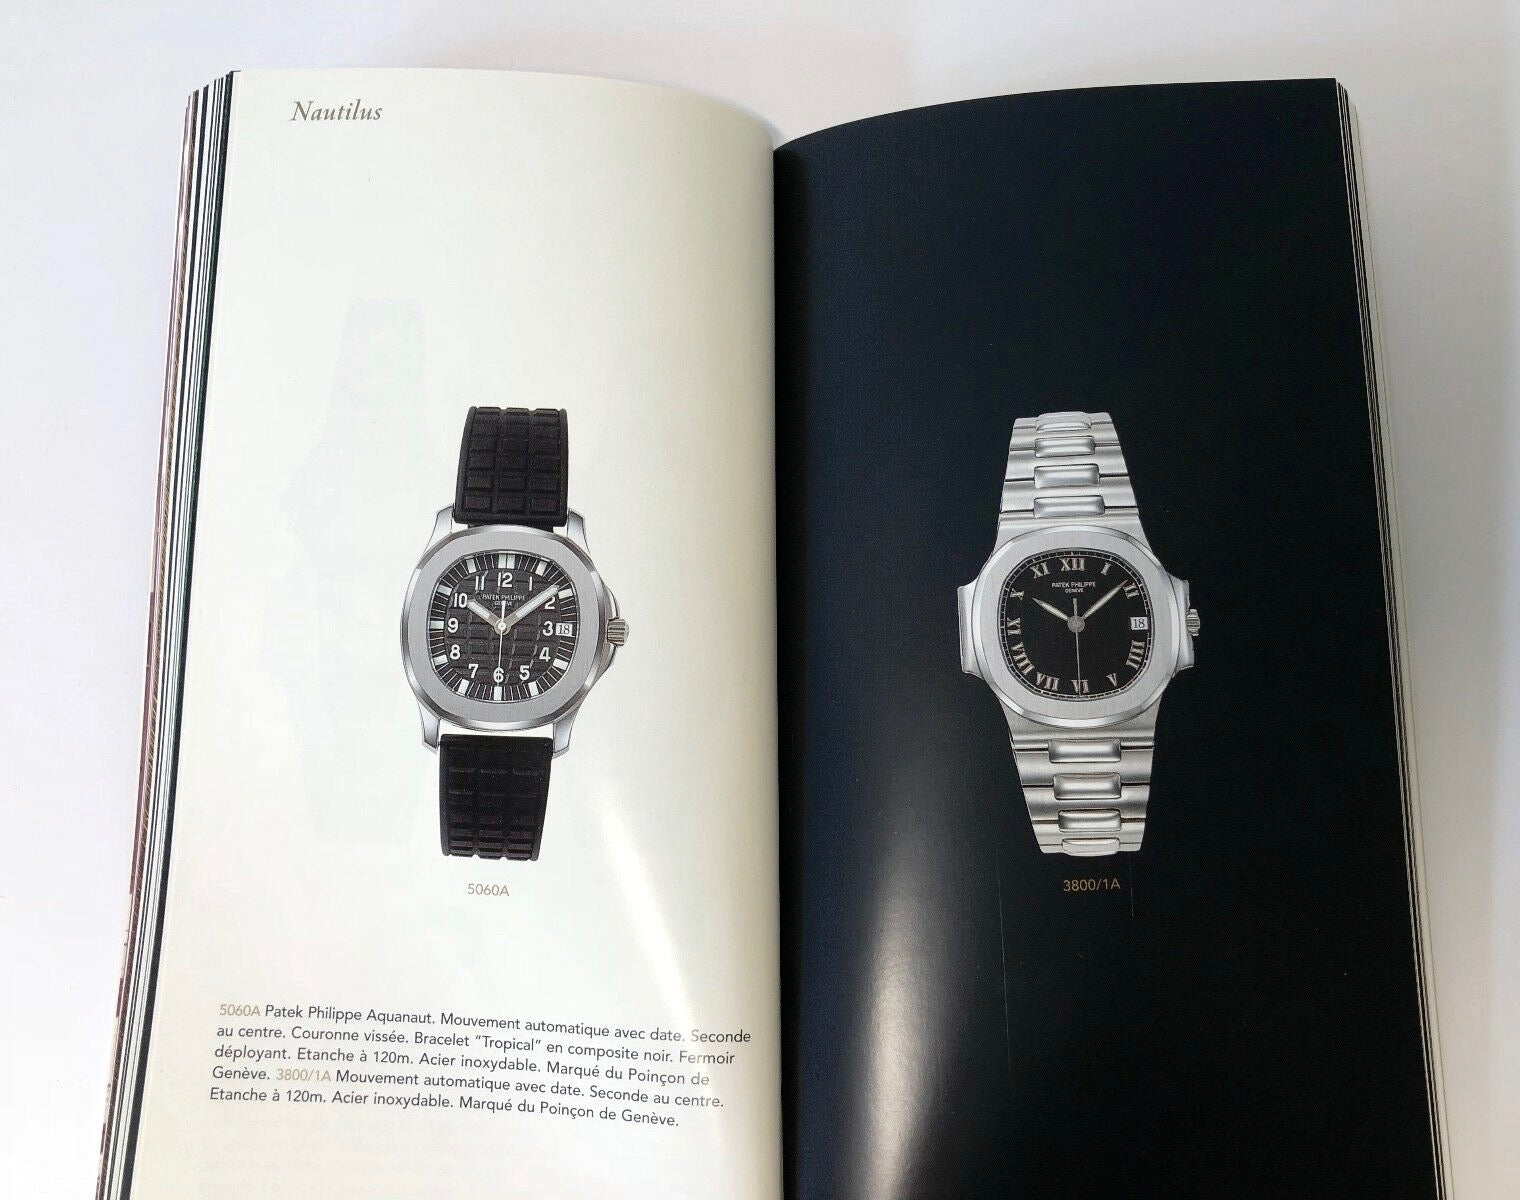 Patek Philippe 5060 Aquanaut in a 1997 catalogue listed under Nautilus for A Collected Man London